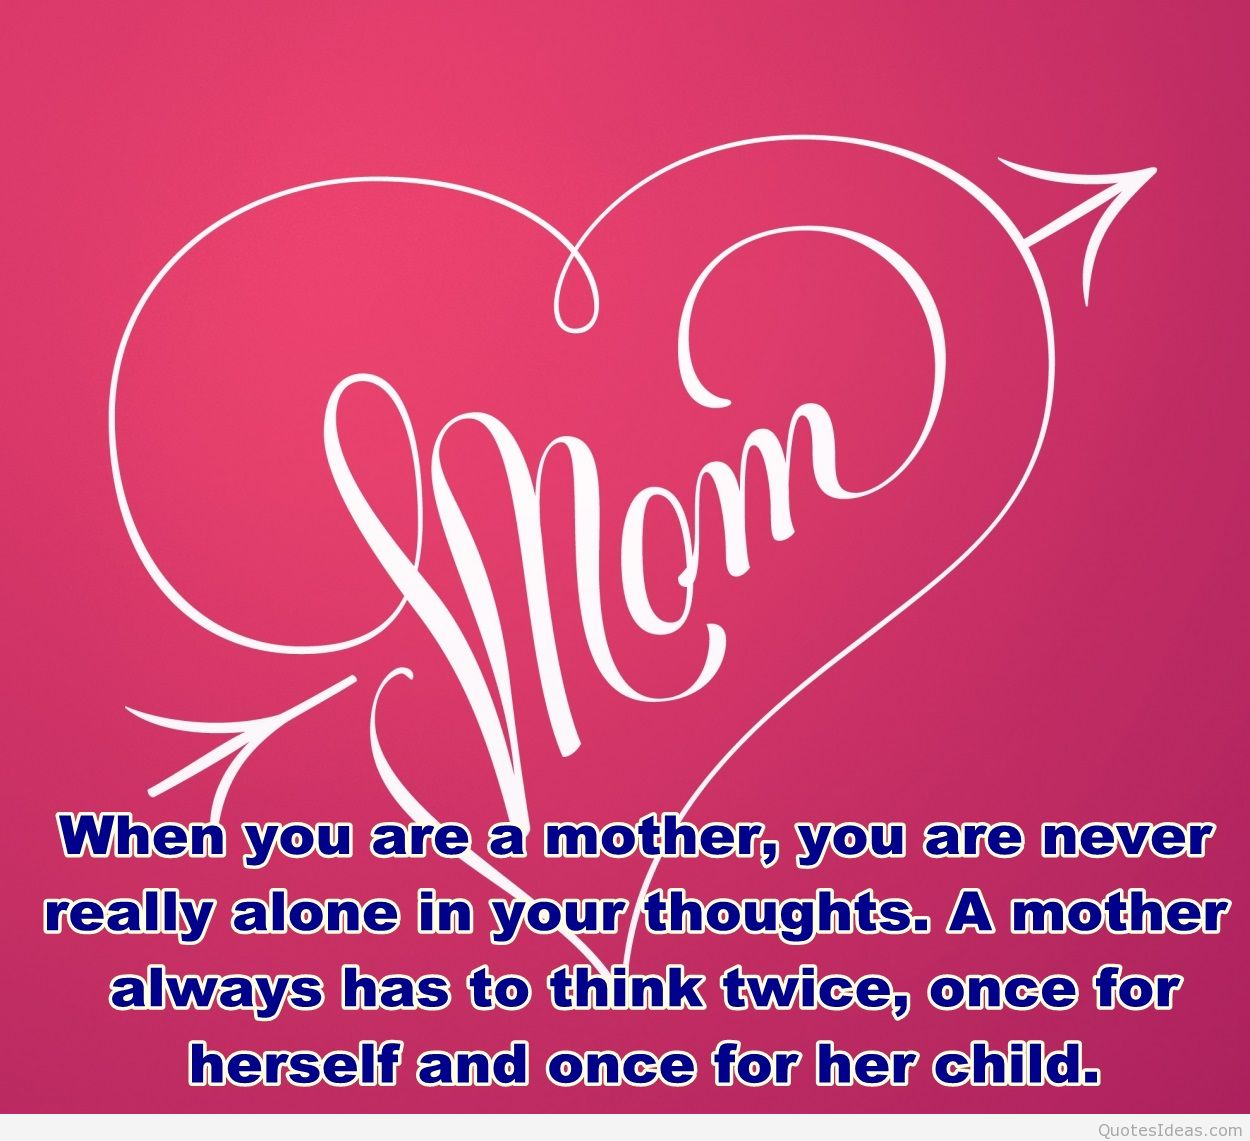 Heart love mom wallpaper hd 1250x1141